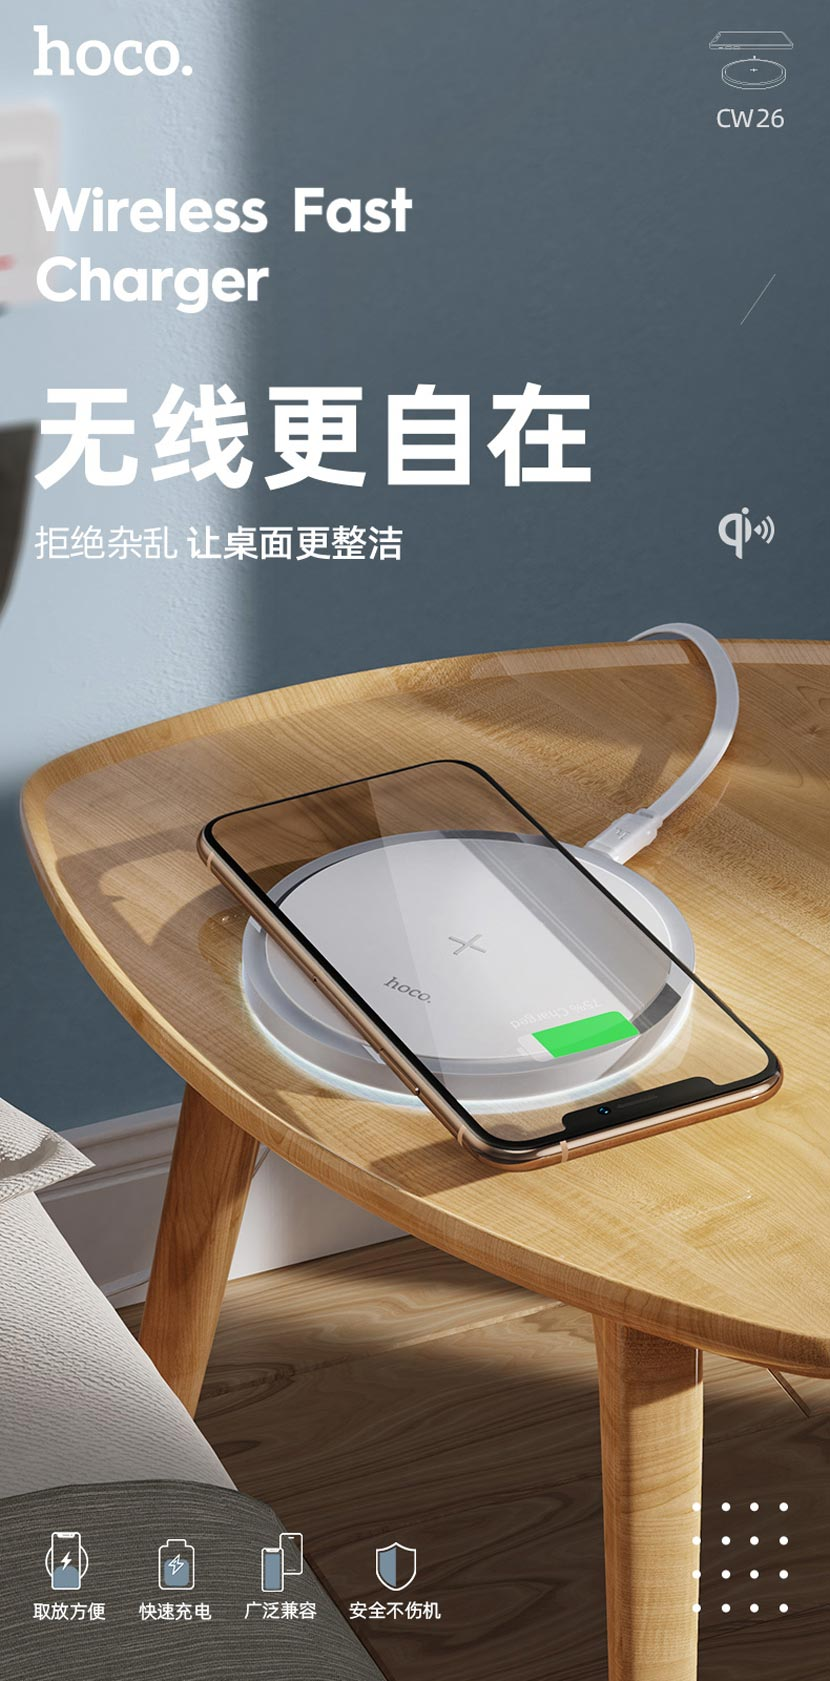 hoco news cw26 powerful 15w wireless fast charger without wires cn